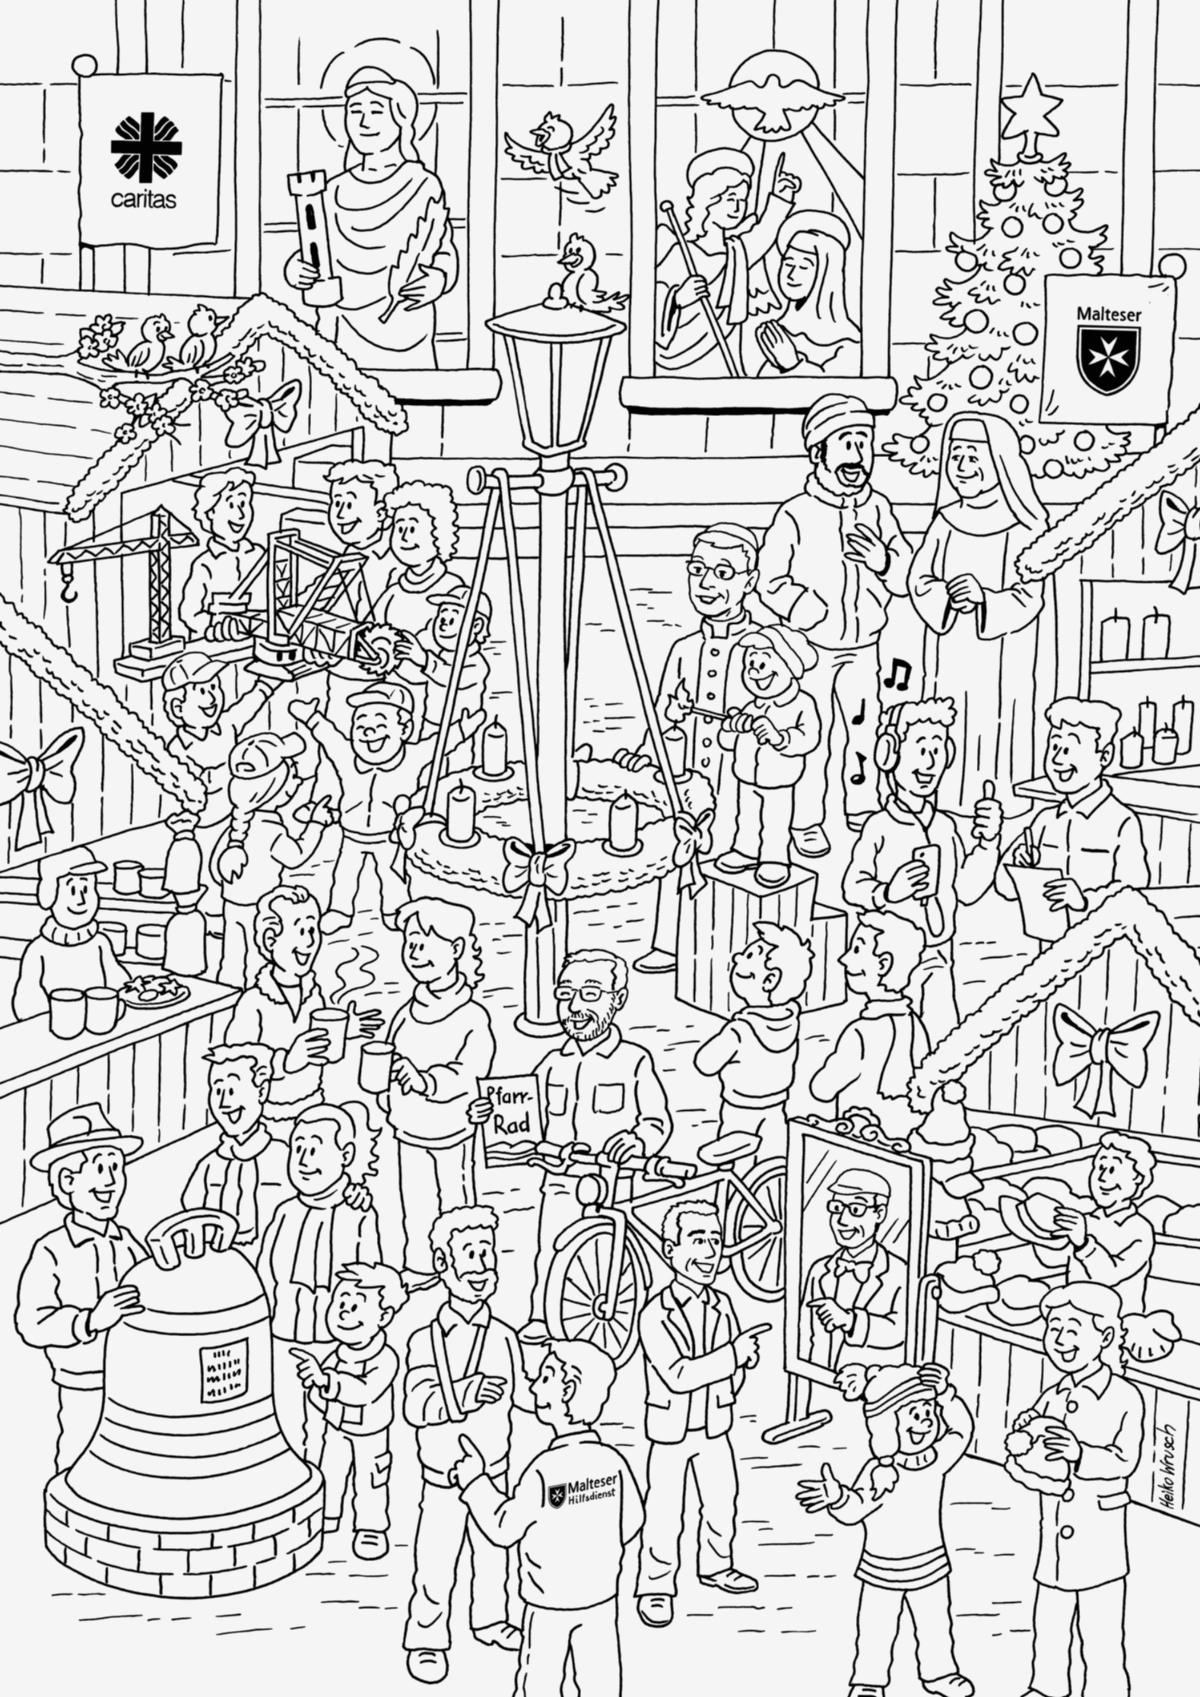 27 advent coloring pages catholic download - coloring sheets